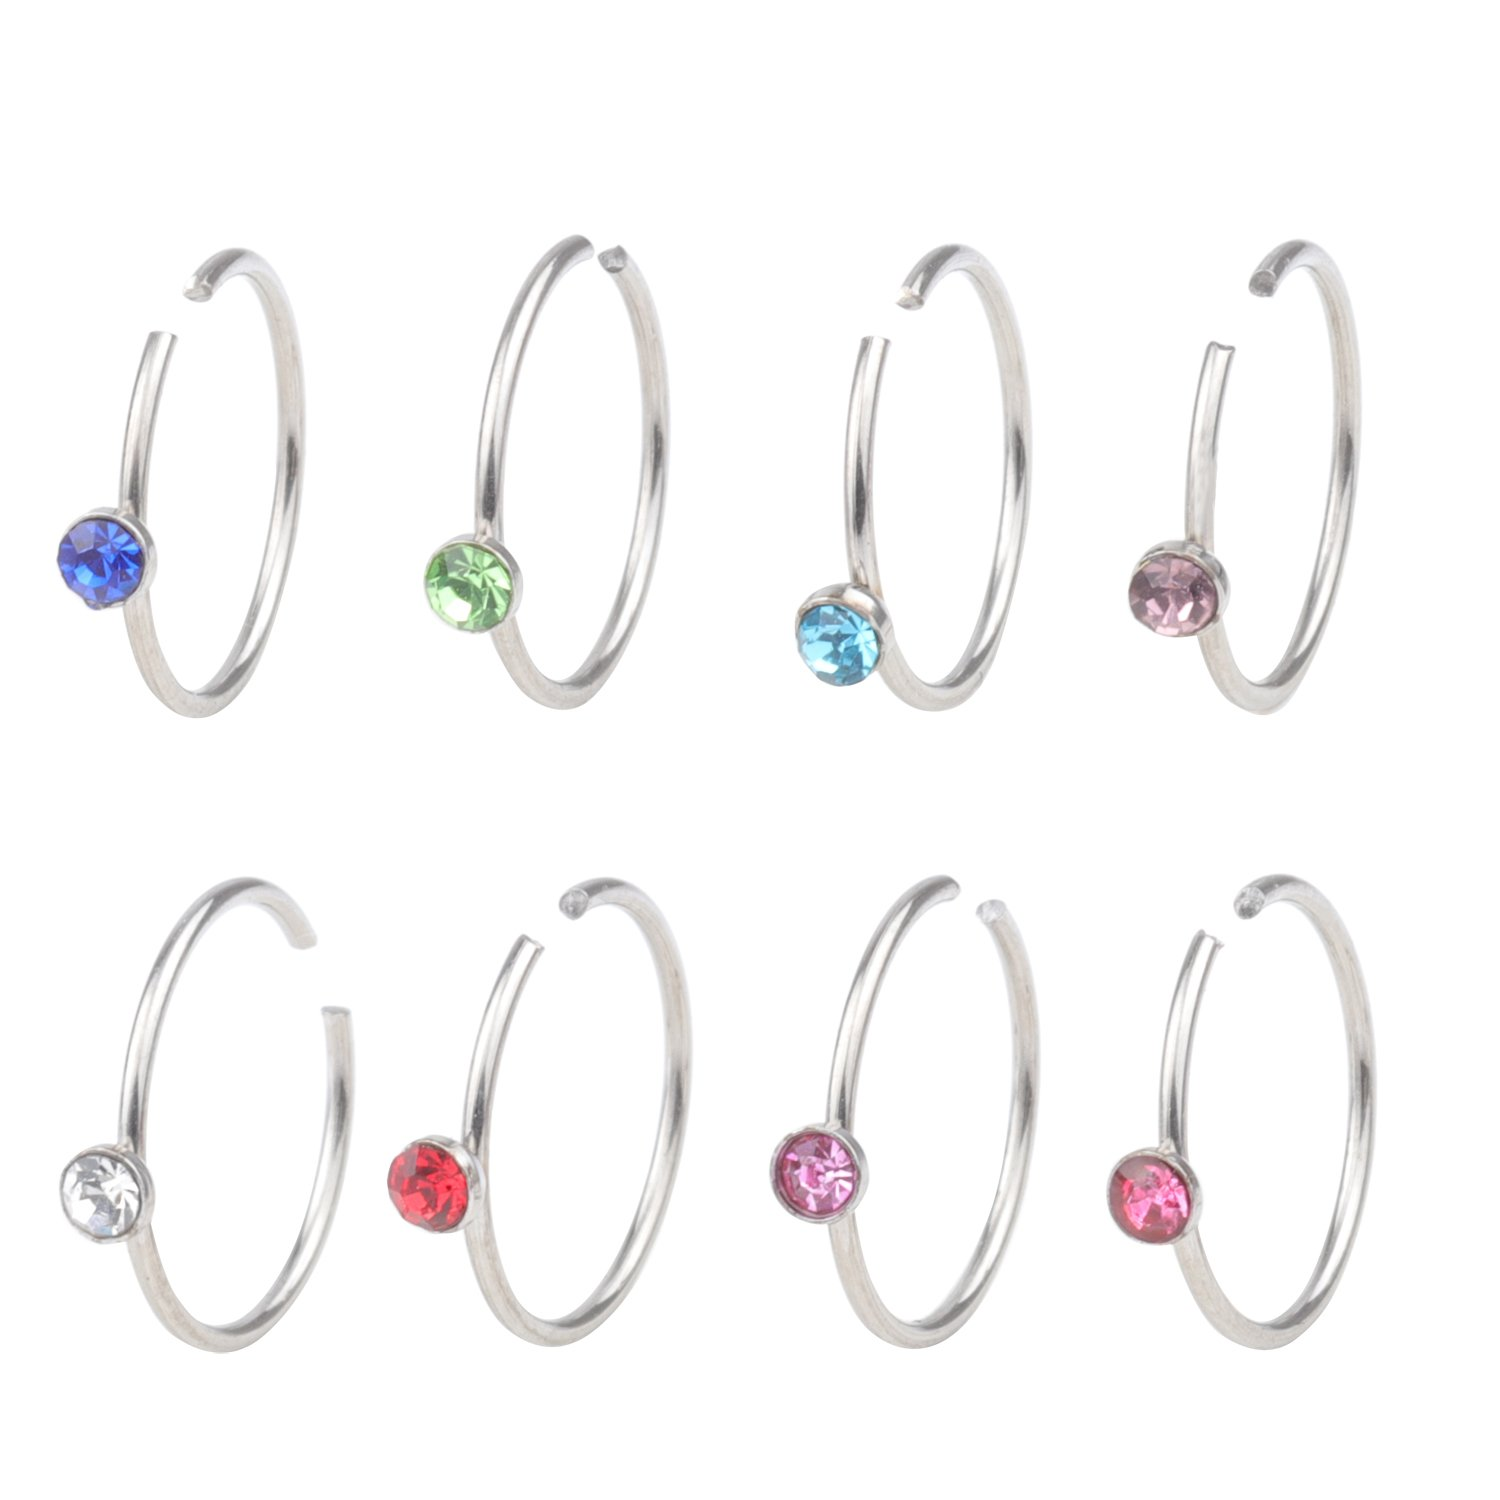 FY 20G 8pcs Surgical Steel Nose Hoop Colorful Cubic Zirconia Ring Body Jewelry Piercing 8mm